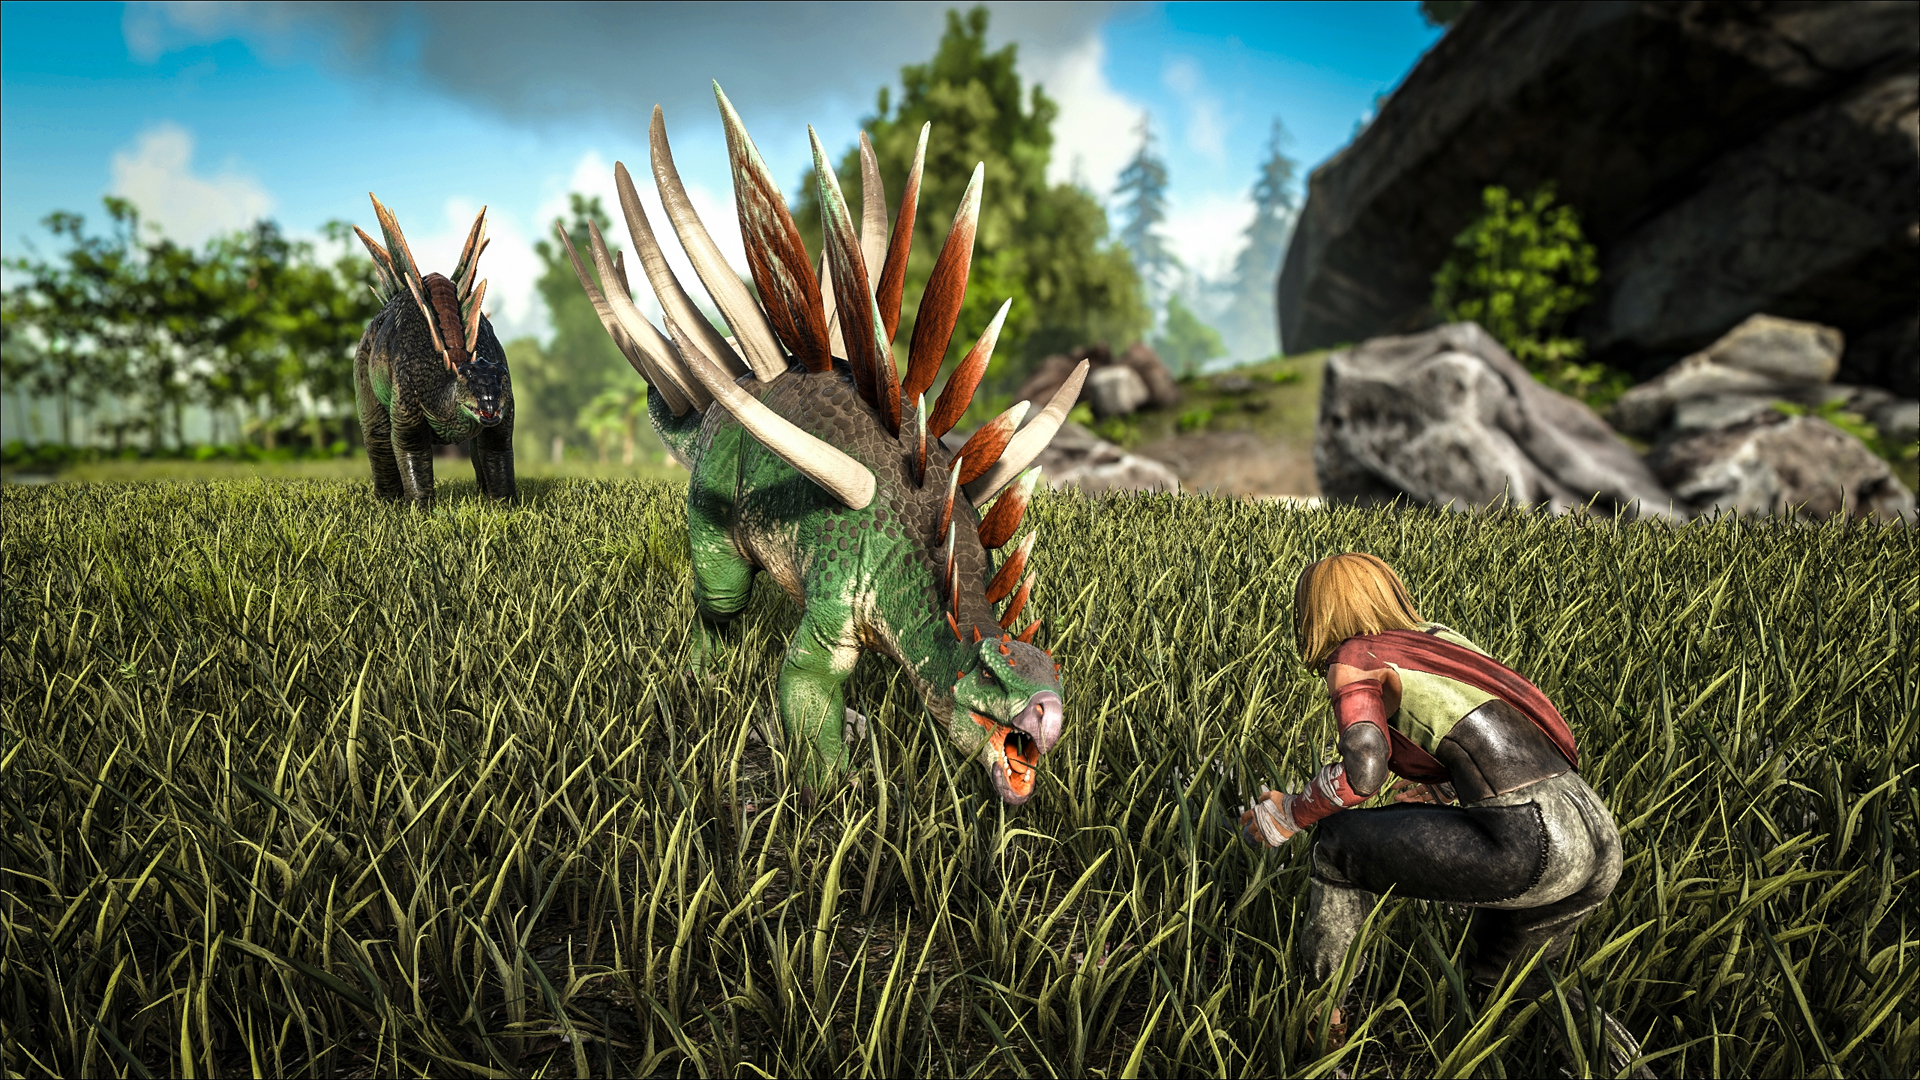 Ark Survival Evolved Update V257 Trailer Screenshots The Hidden Levels Level it really high with food to heal for longer. the hidden levels